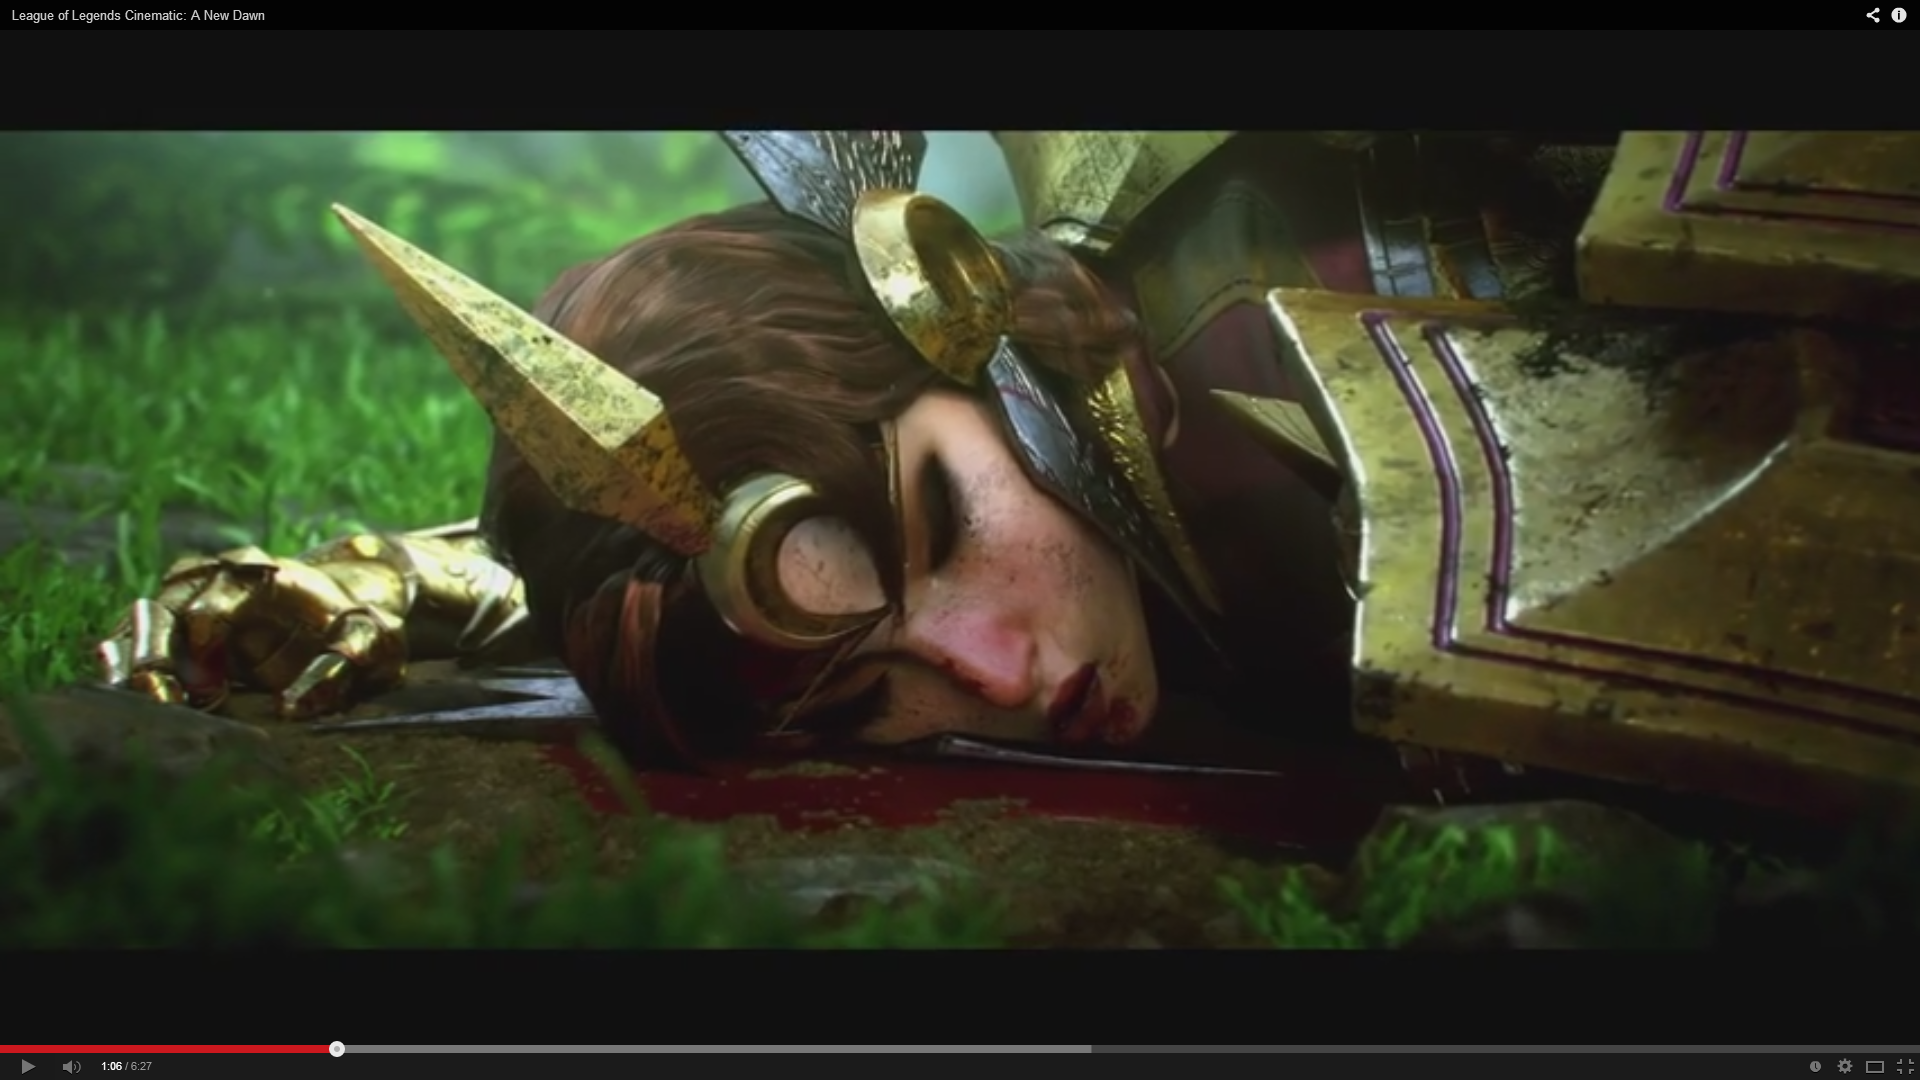 The League Of Legends New Dawn Cinematic Has Been Censored By China But Not Where You Might Expect